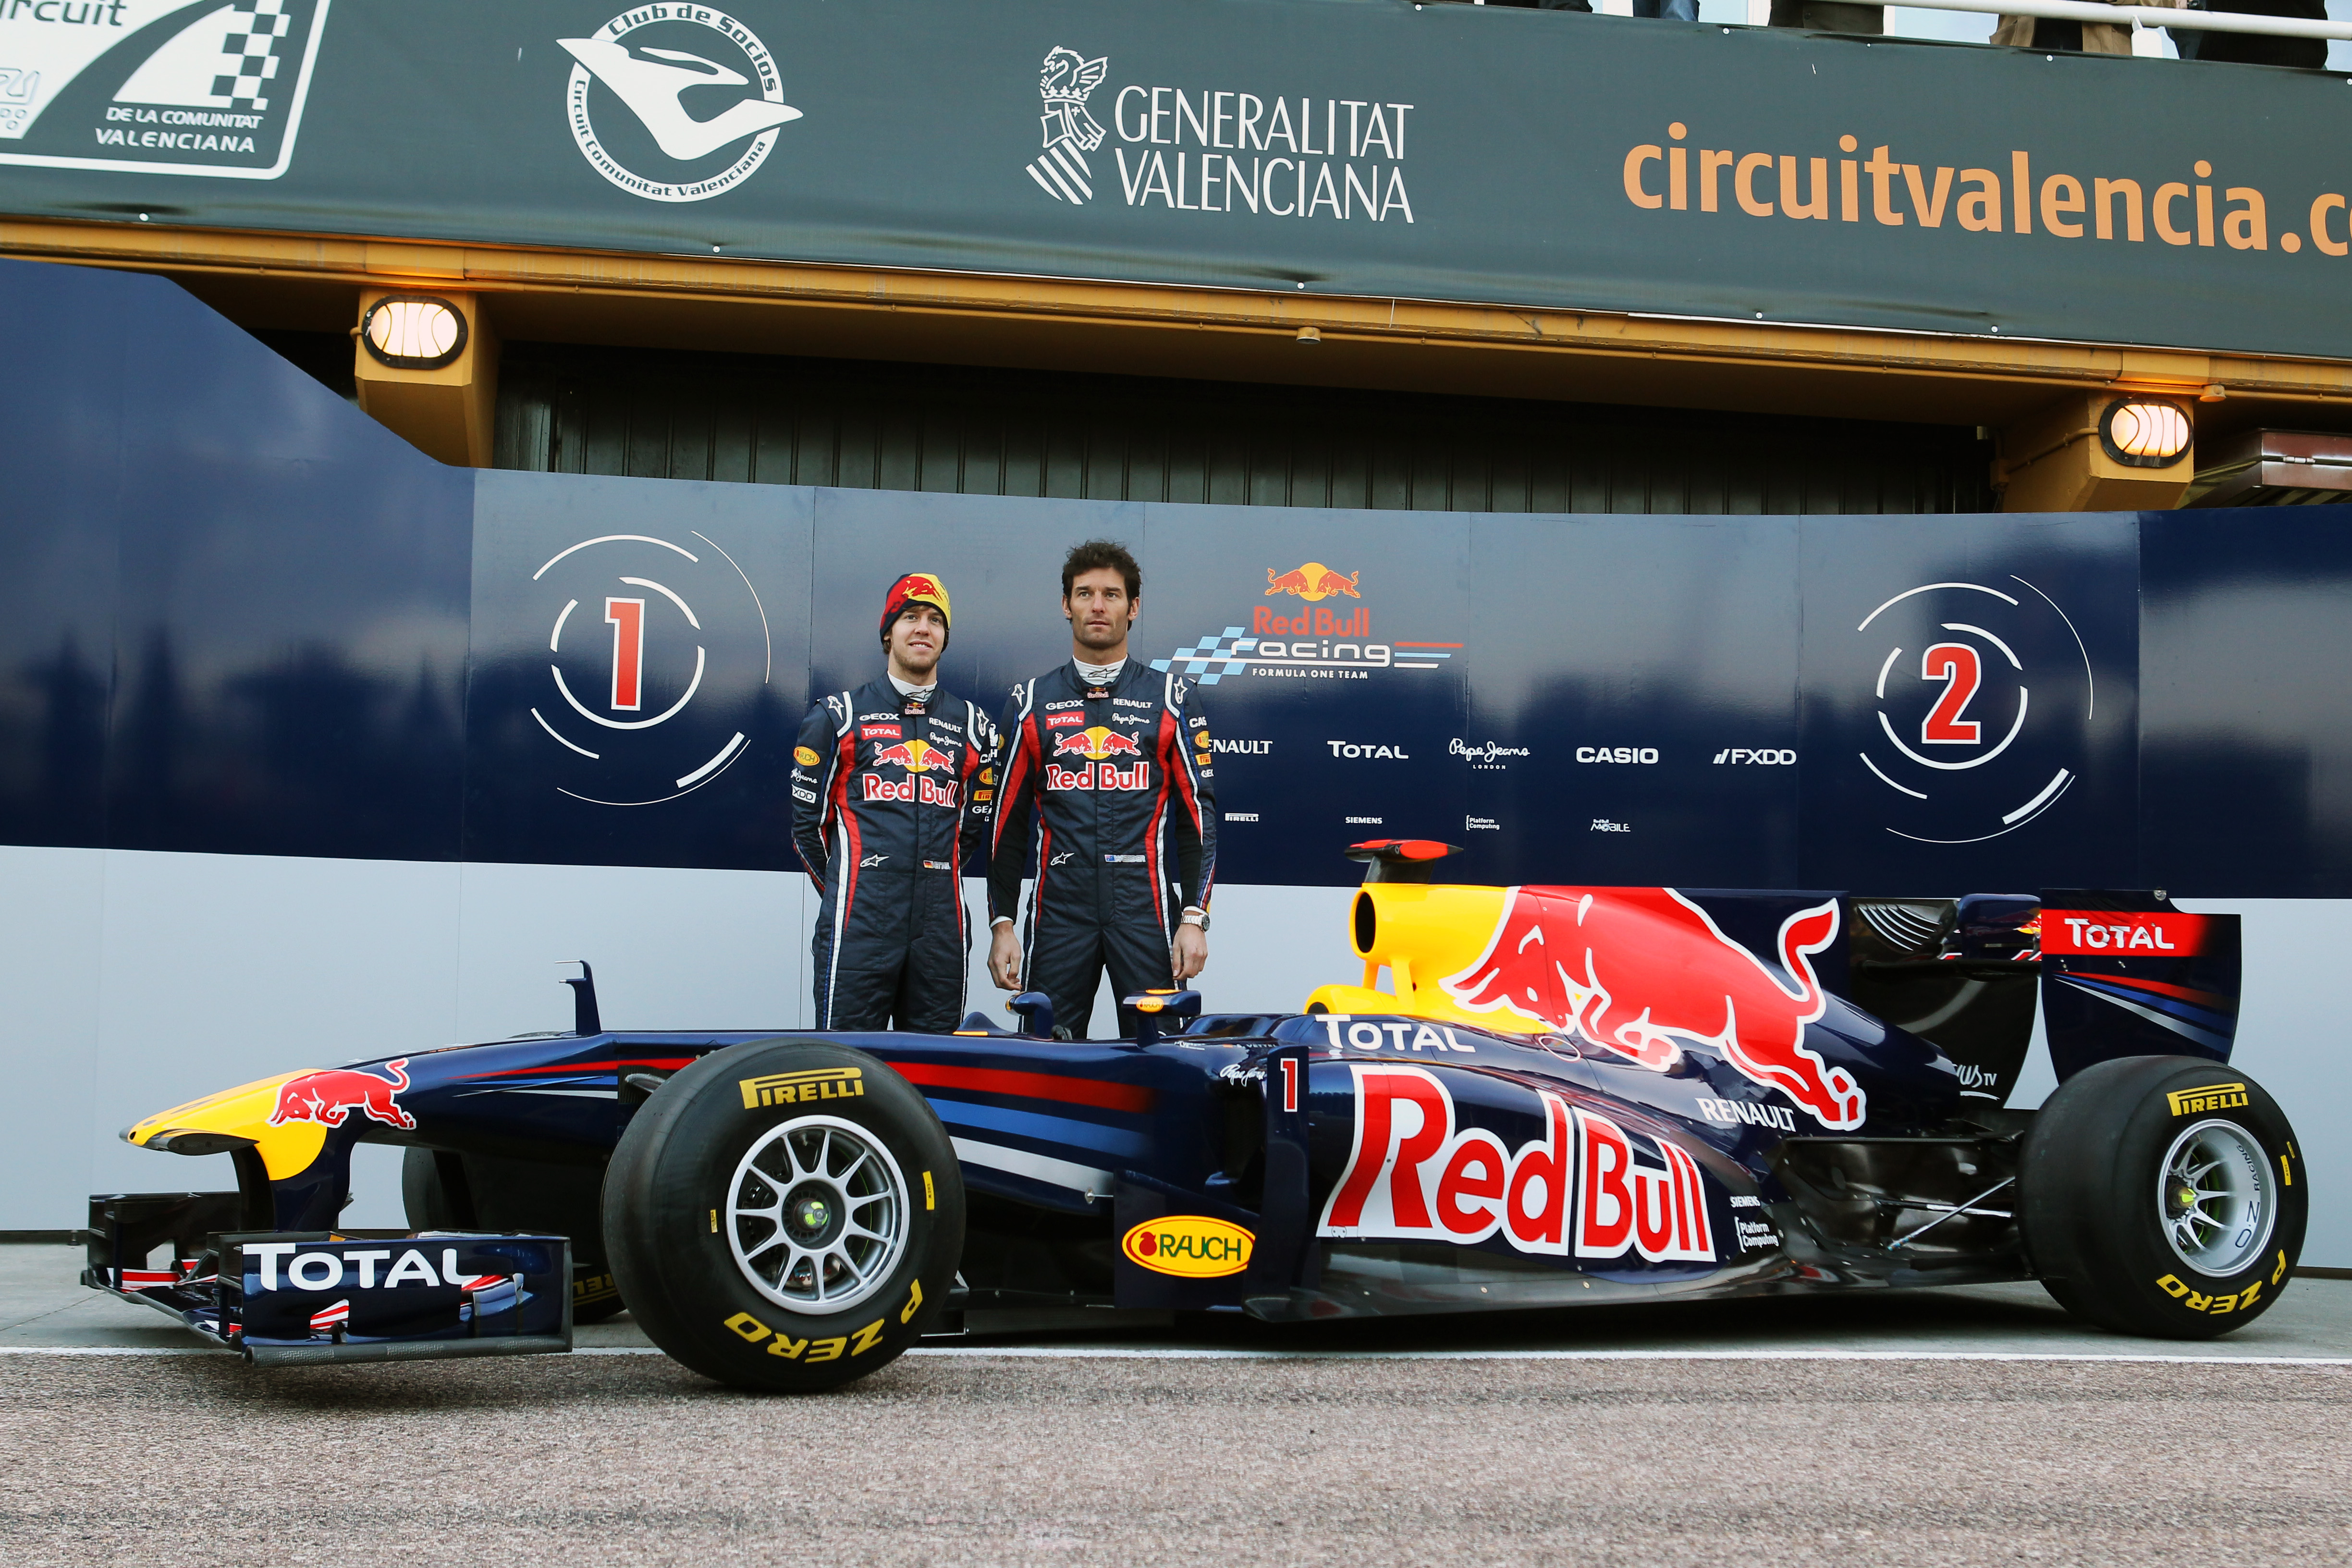 Red Bull Rb7 Themotorsportarchive Com